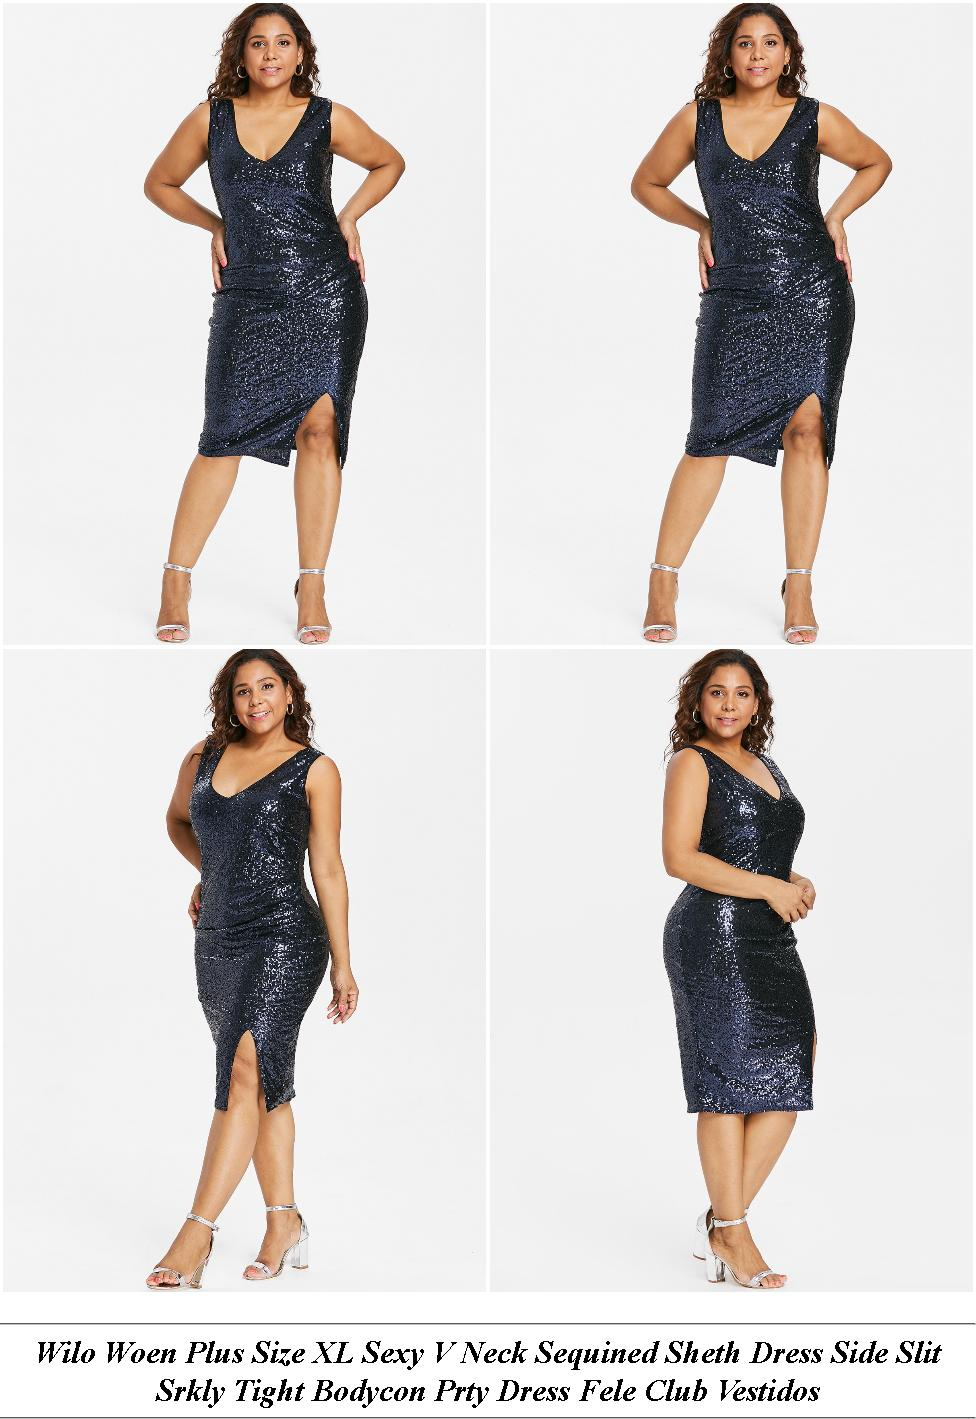 Plus Size Cocktail Dresses Canada Online - Sale On Tassimo - Maternity Dresses Uk Occasion